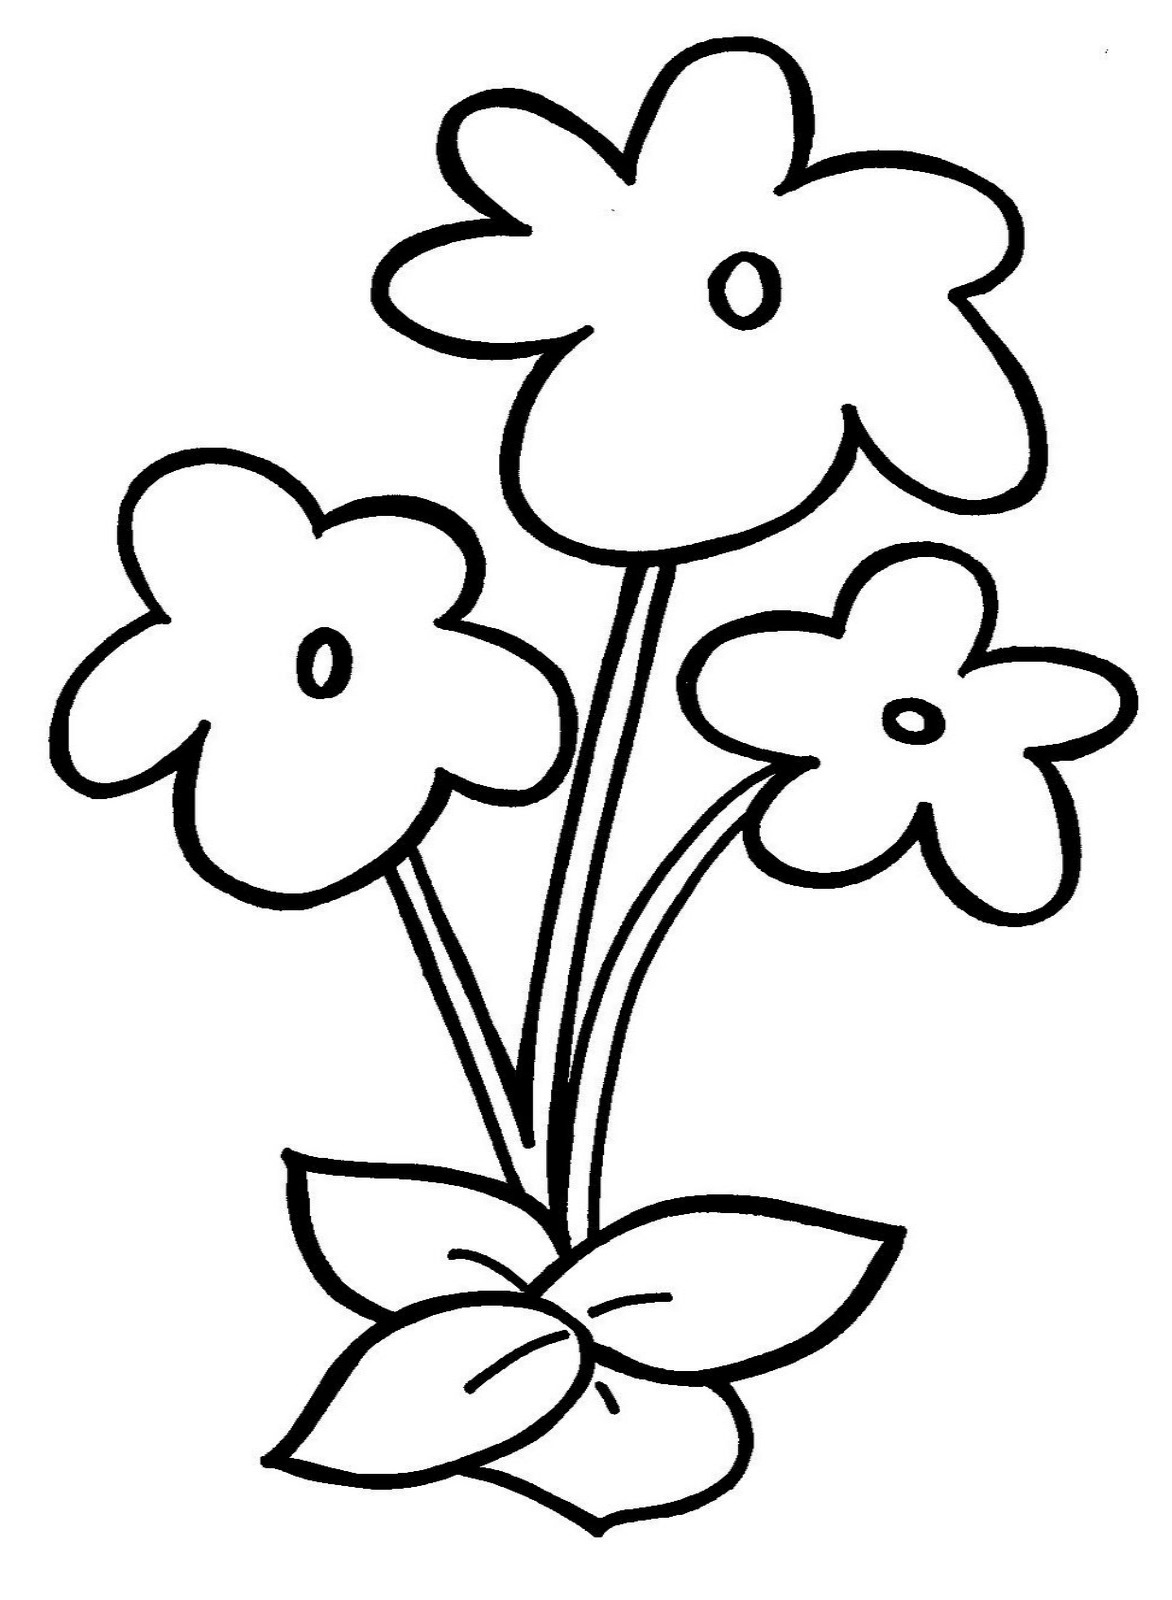 picture of flowers to colour flowers printing pages creative children colour of flowers picture to